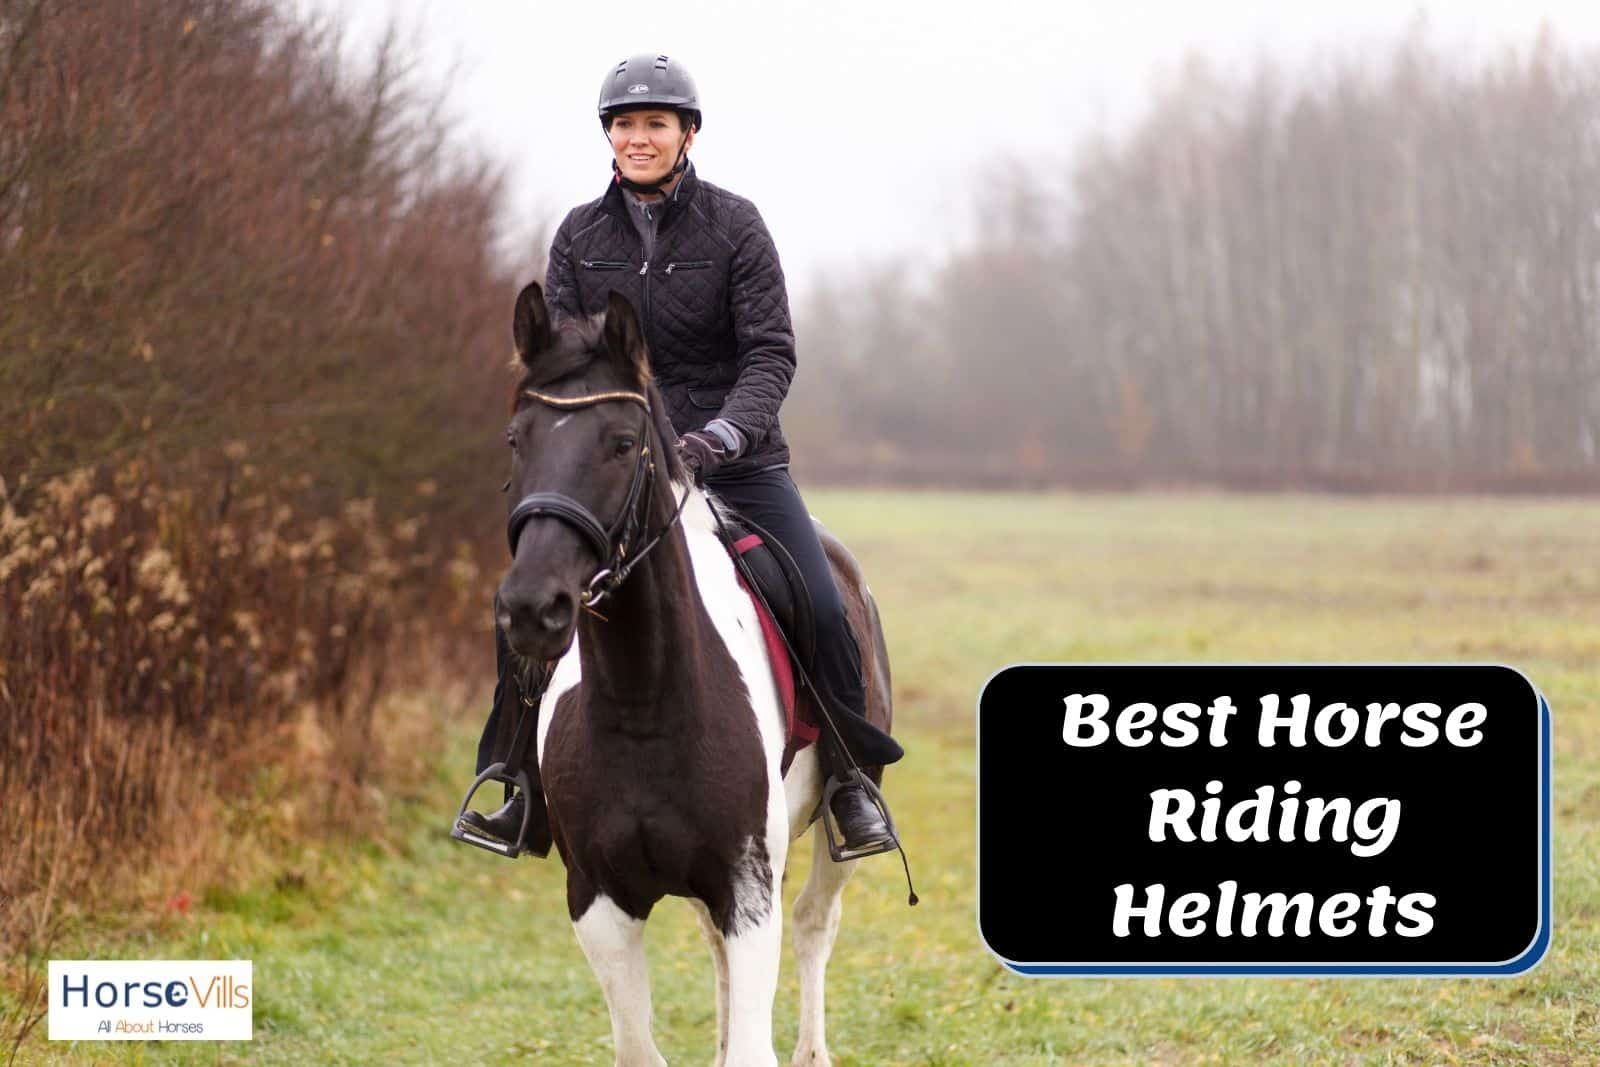 a lady riding a horse and wearing the best horse riding helmet